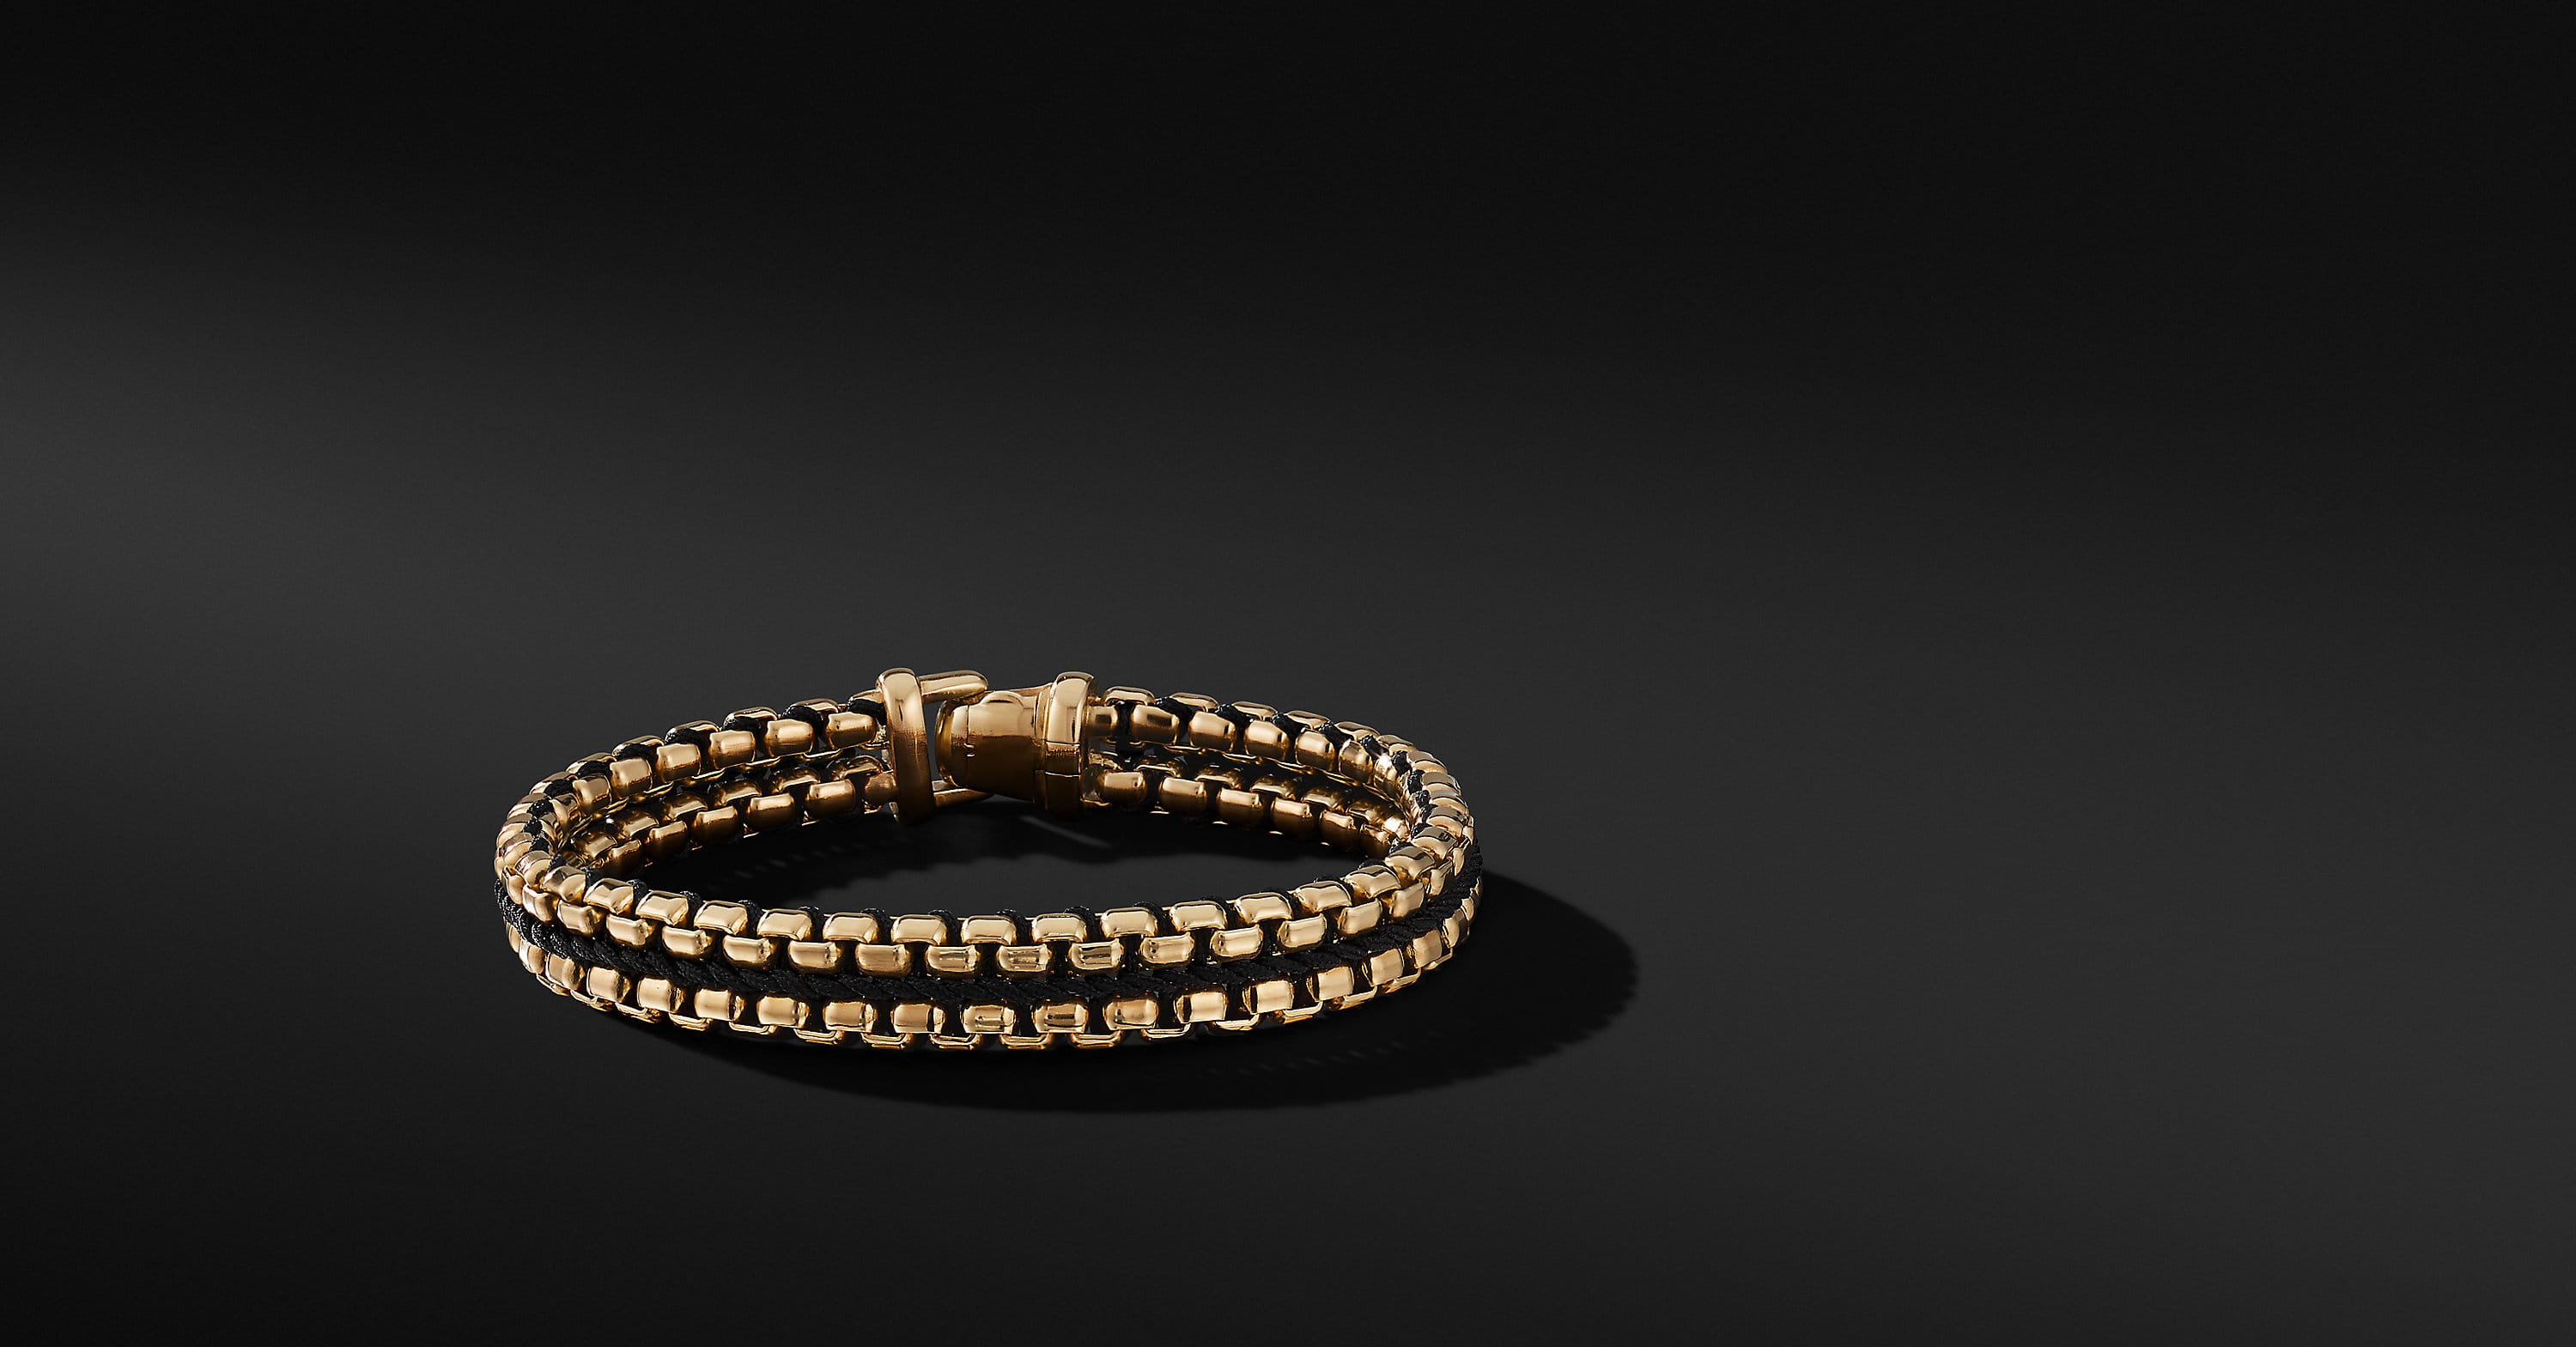 Woven Box Chain Bracelet in 18K Gold